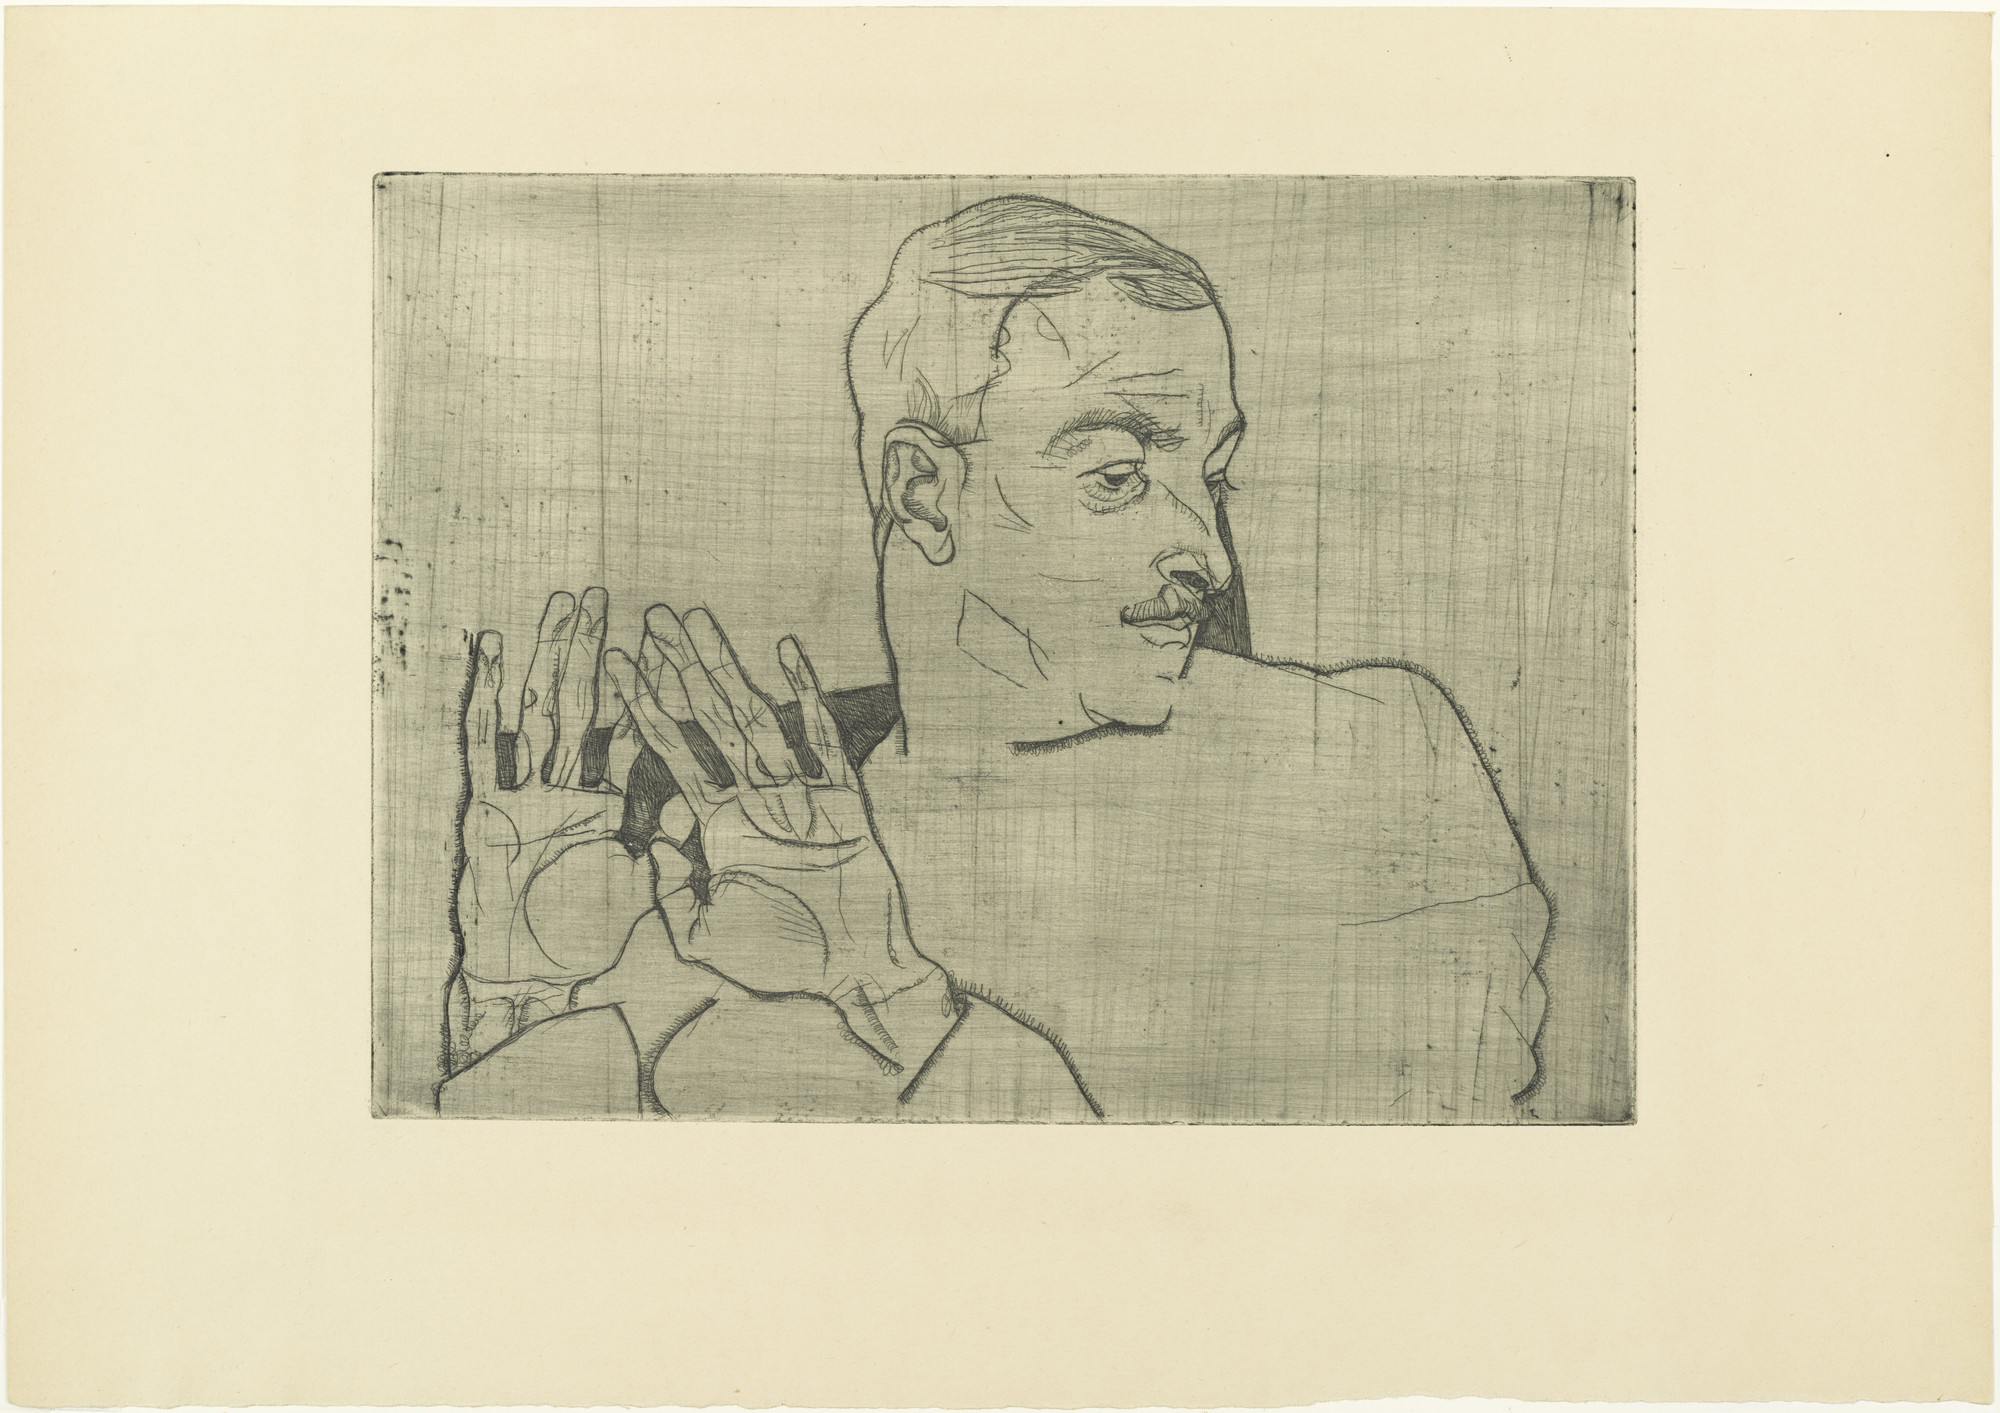 Egon Schiele. Portrait of Arthur Roessler (Bildnis Arthur Roessler) from The Graphic Work of Egon Schiele (Das Graphische Werk von Egon Schiele). (1914, published 1922)